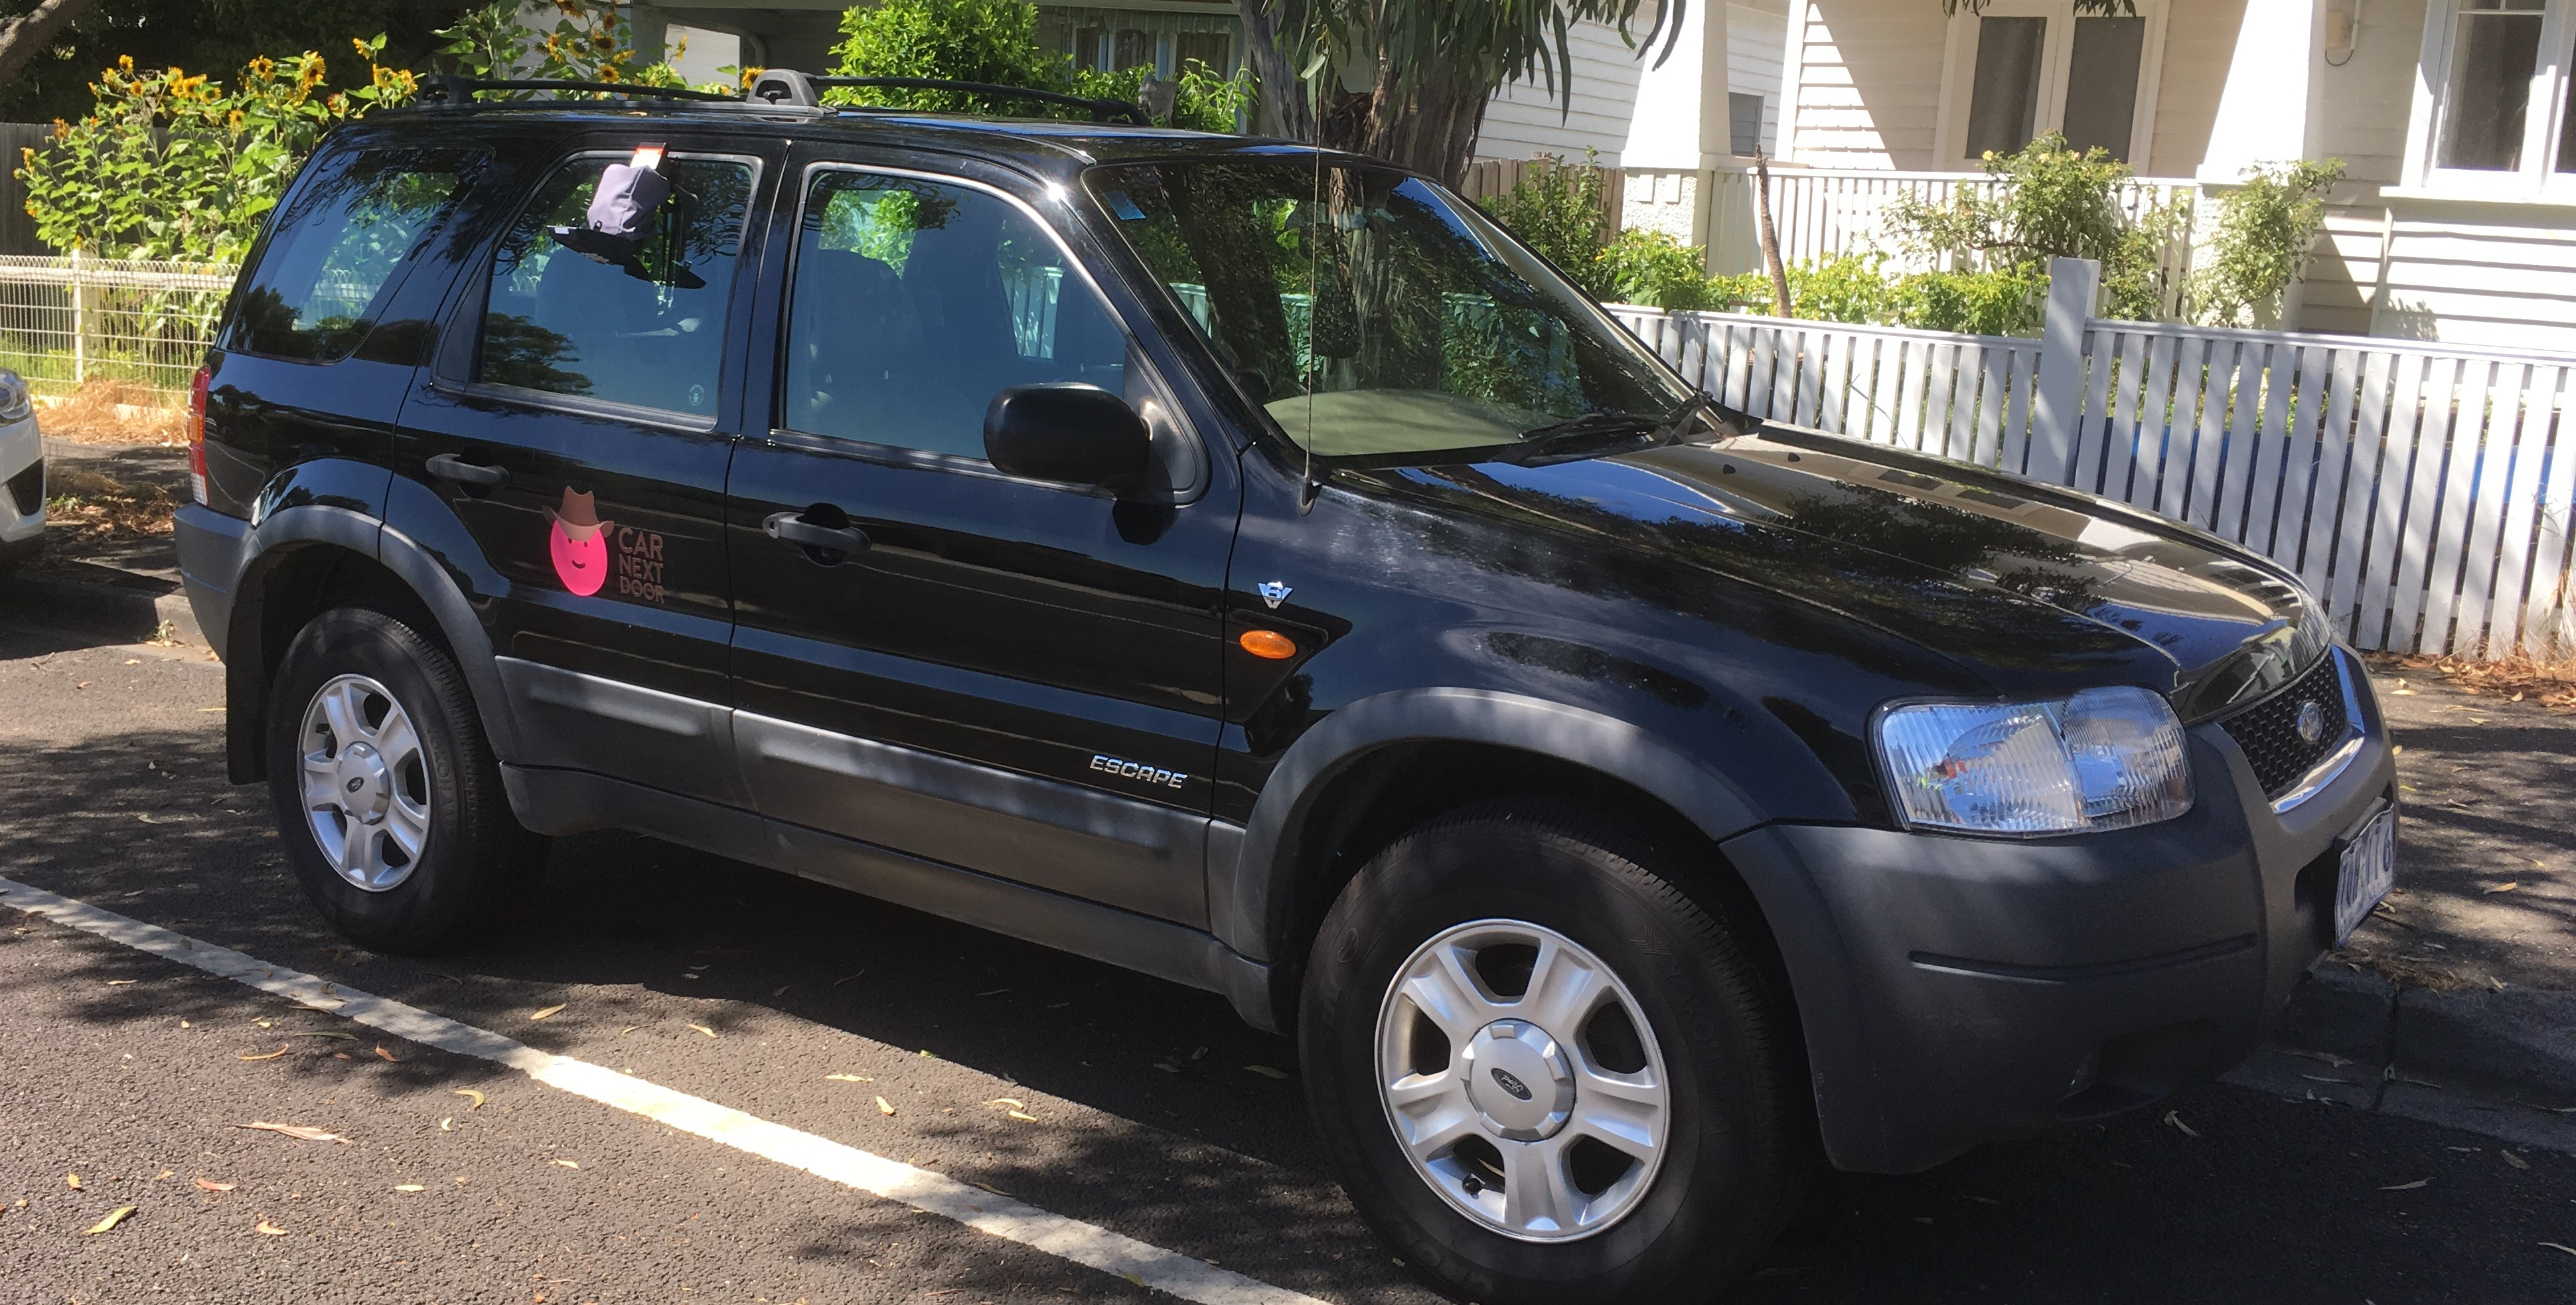 Picture of Dylan's 2003 Ford escape